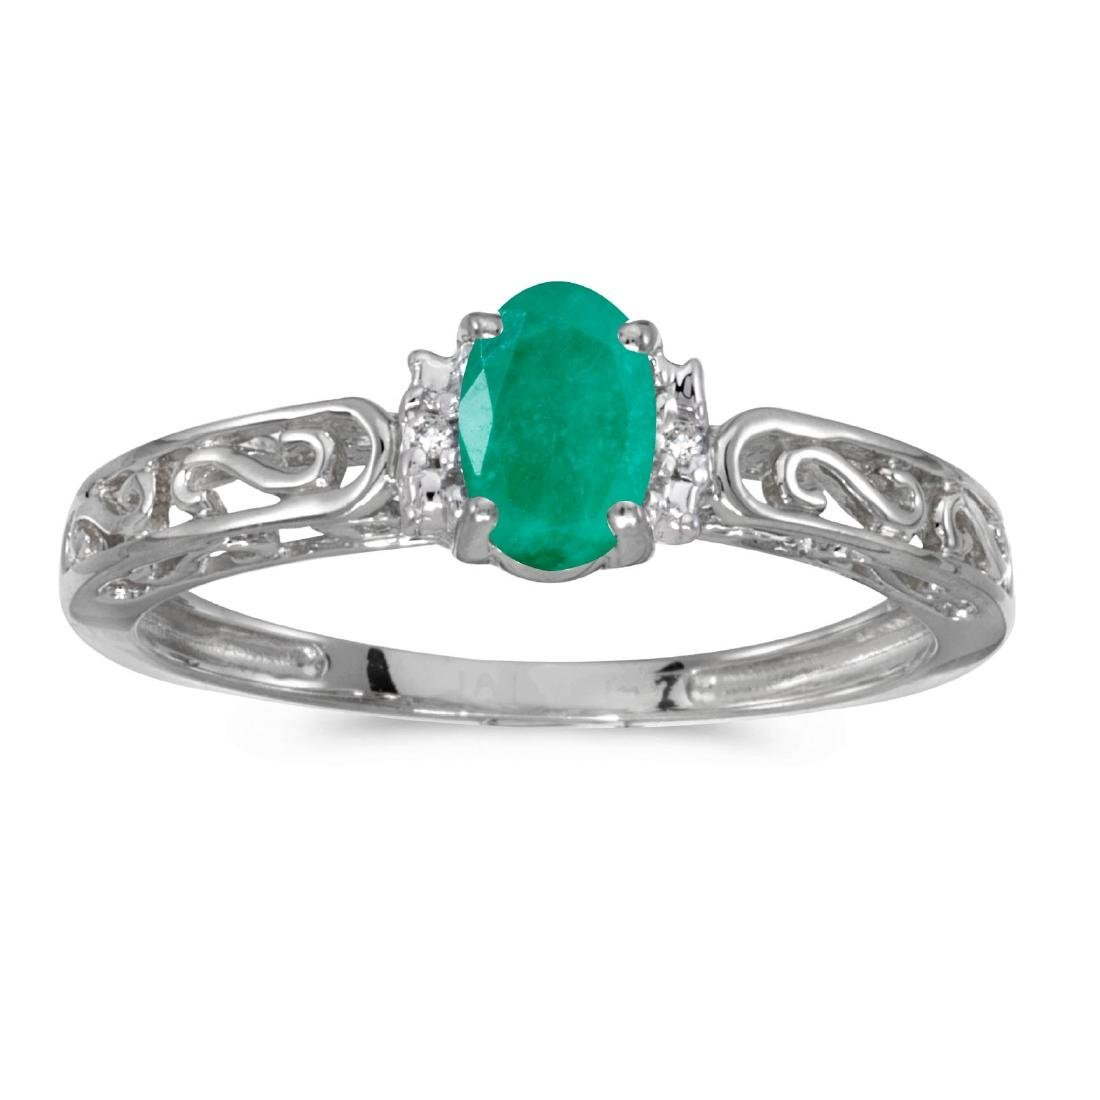 Certified 10k White Gold Oval Emerald And Diamond Ring